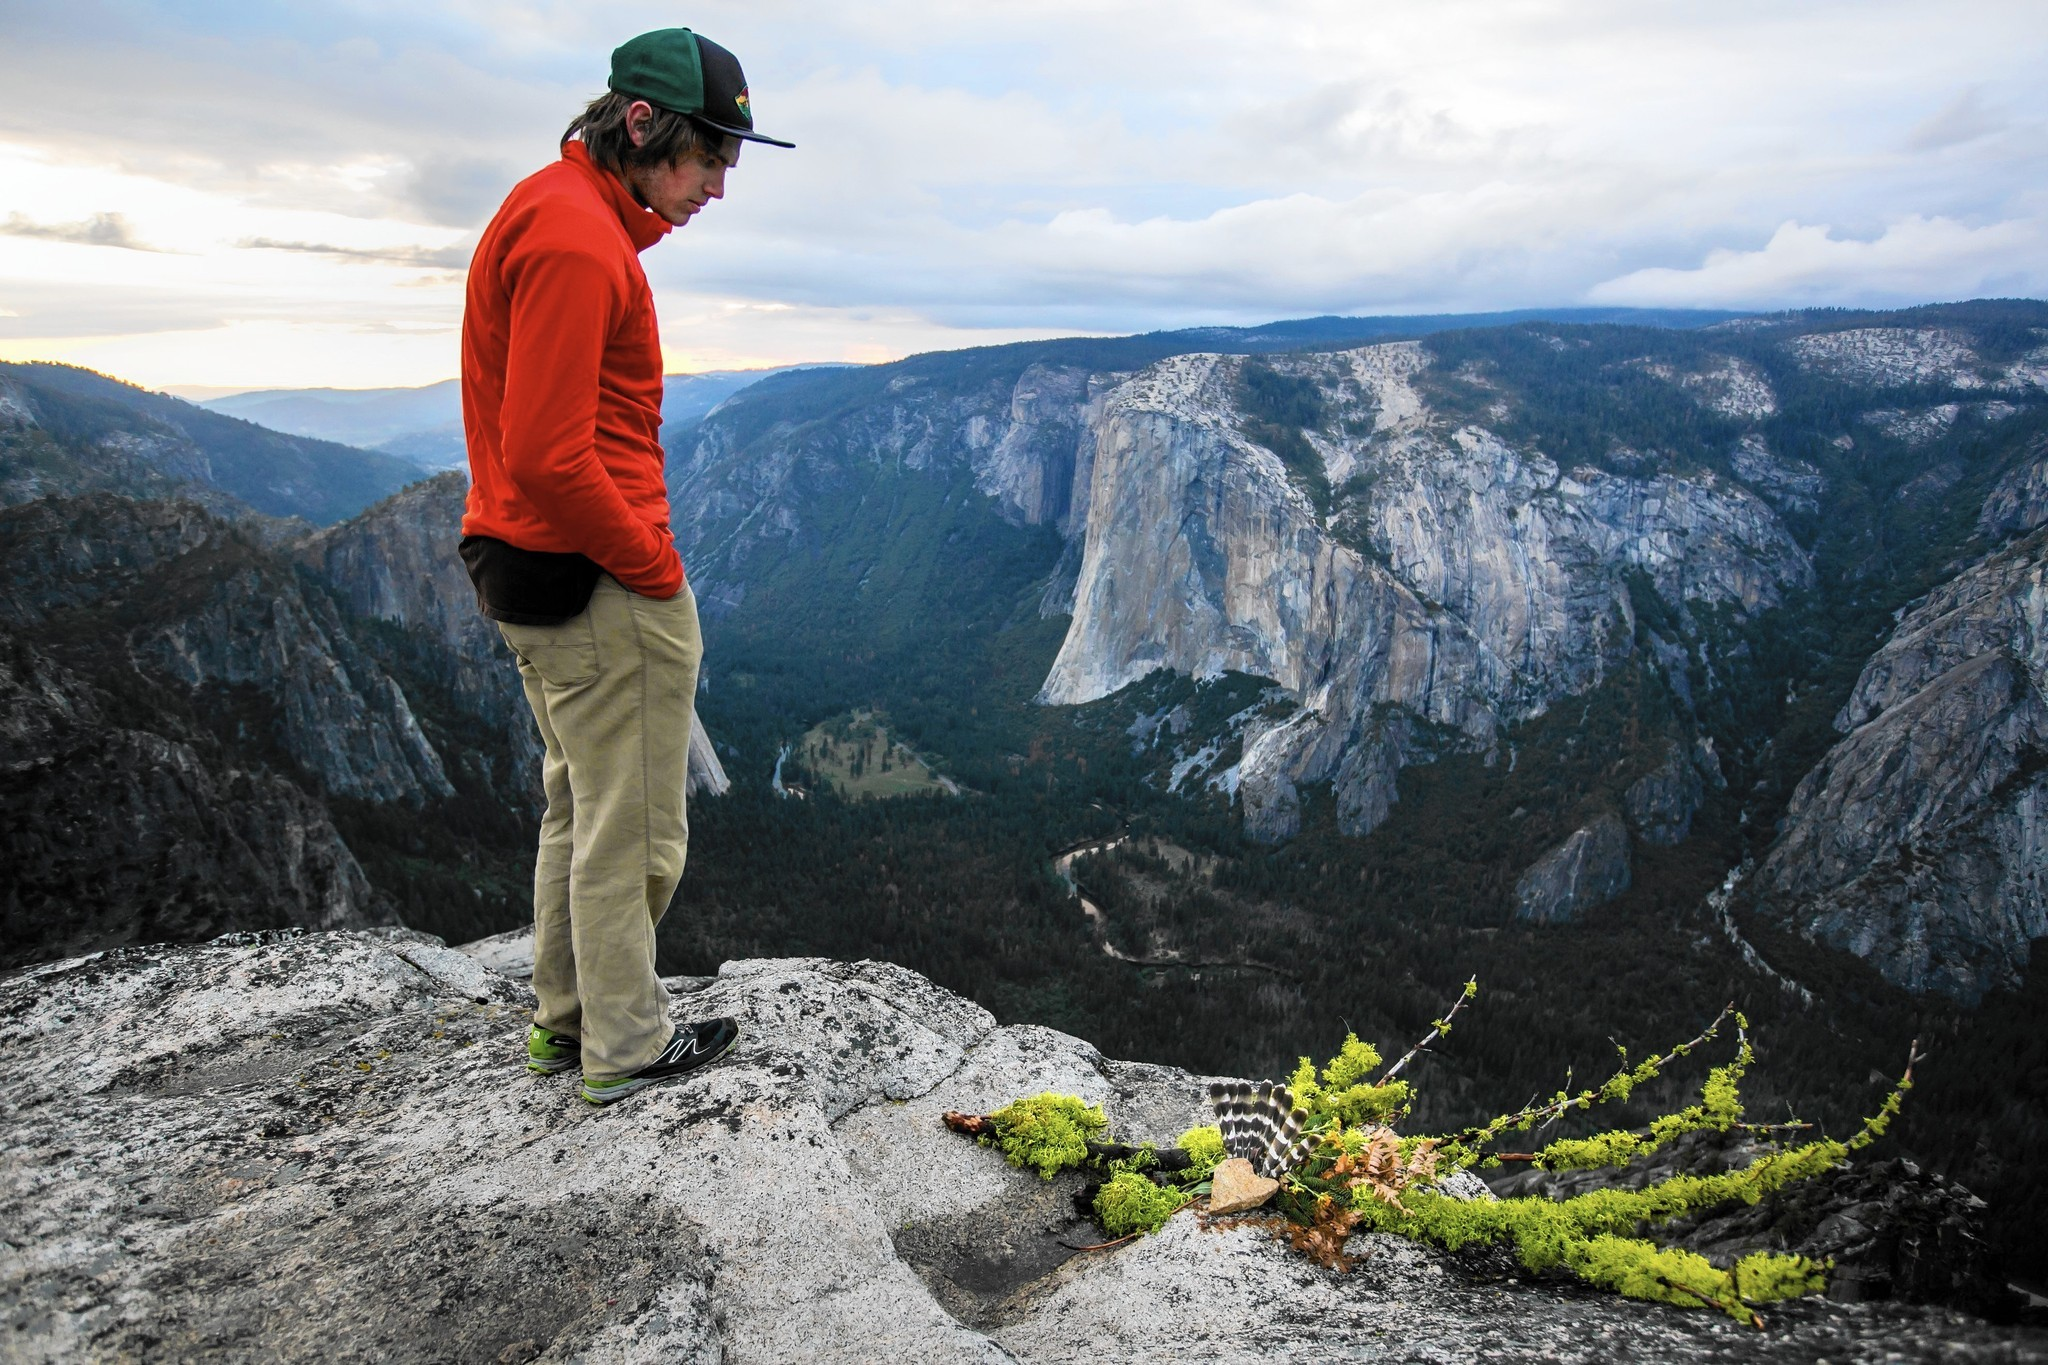 Yosemite BASE jumper was attuned to the flutter of a butterfly